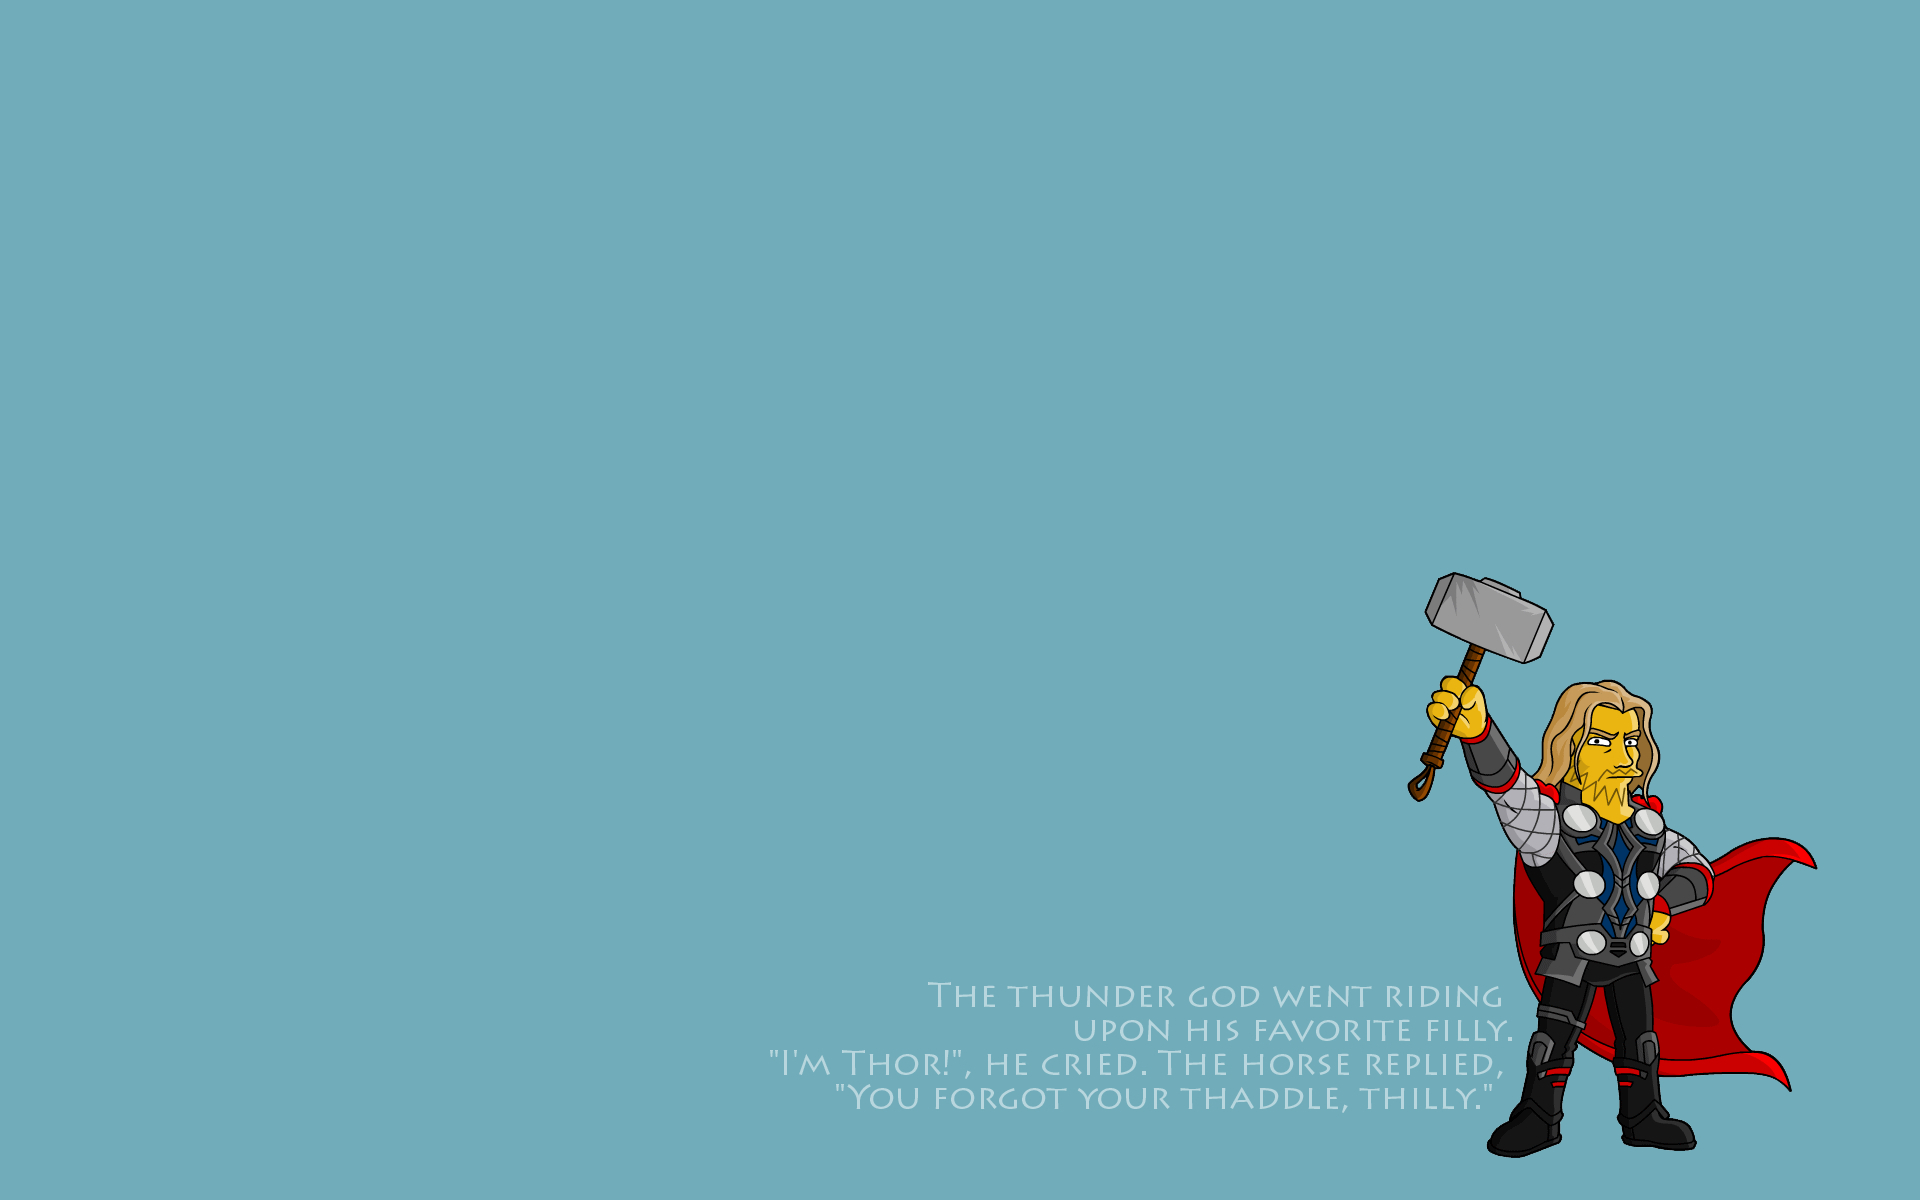 minimalistic text thor The HD Wallpaper